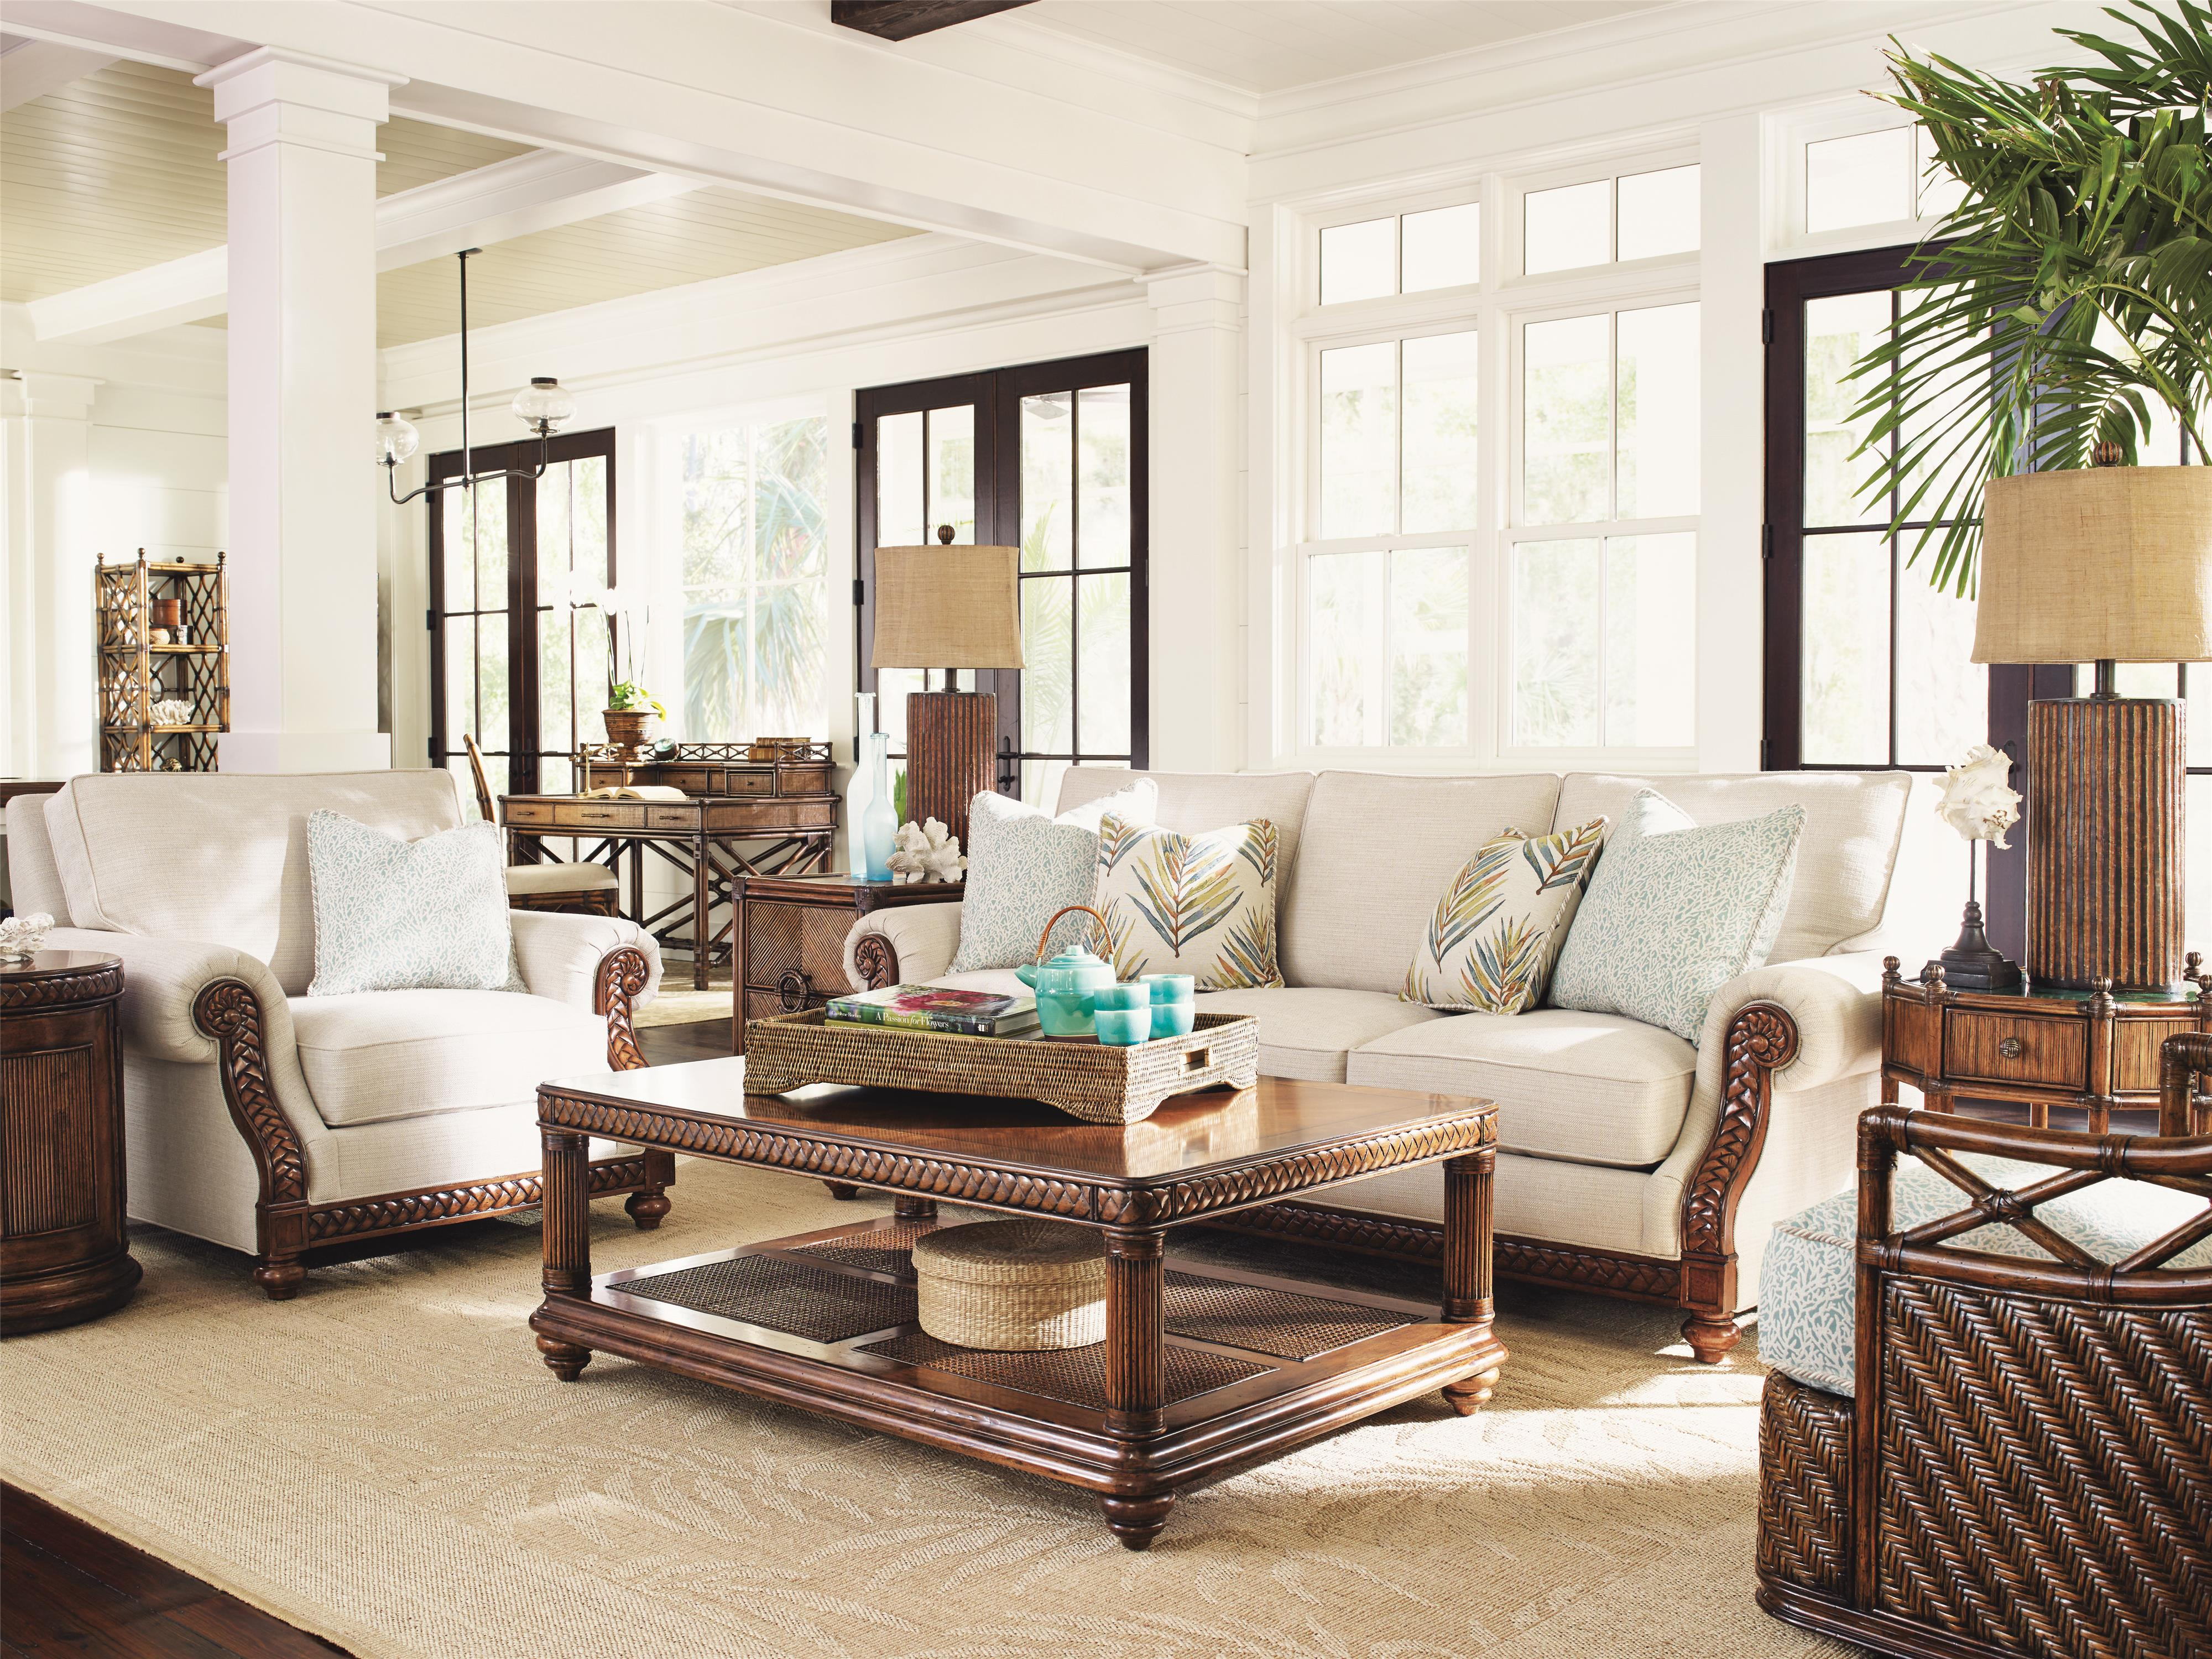 Bali Hai Stationary Living Room Group by Tommy Bahama Home at Baer's Furniture